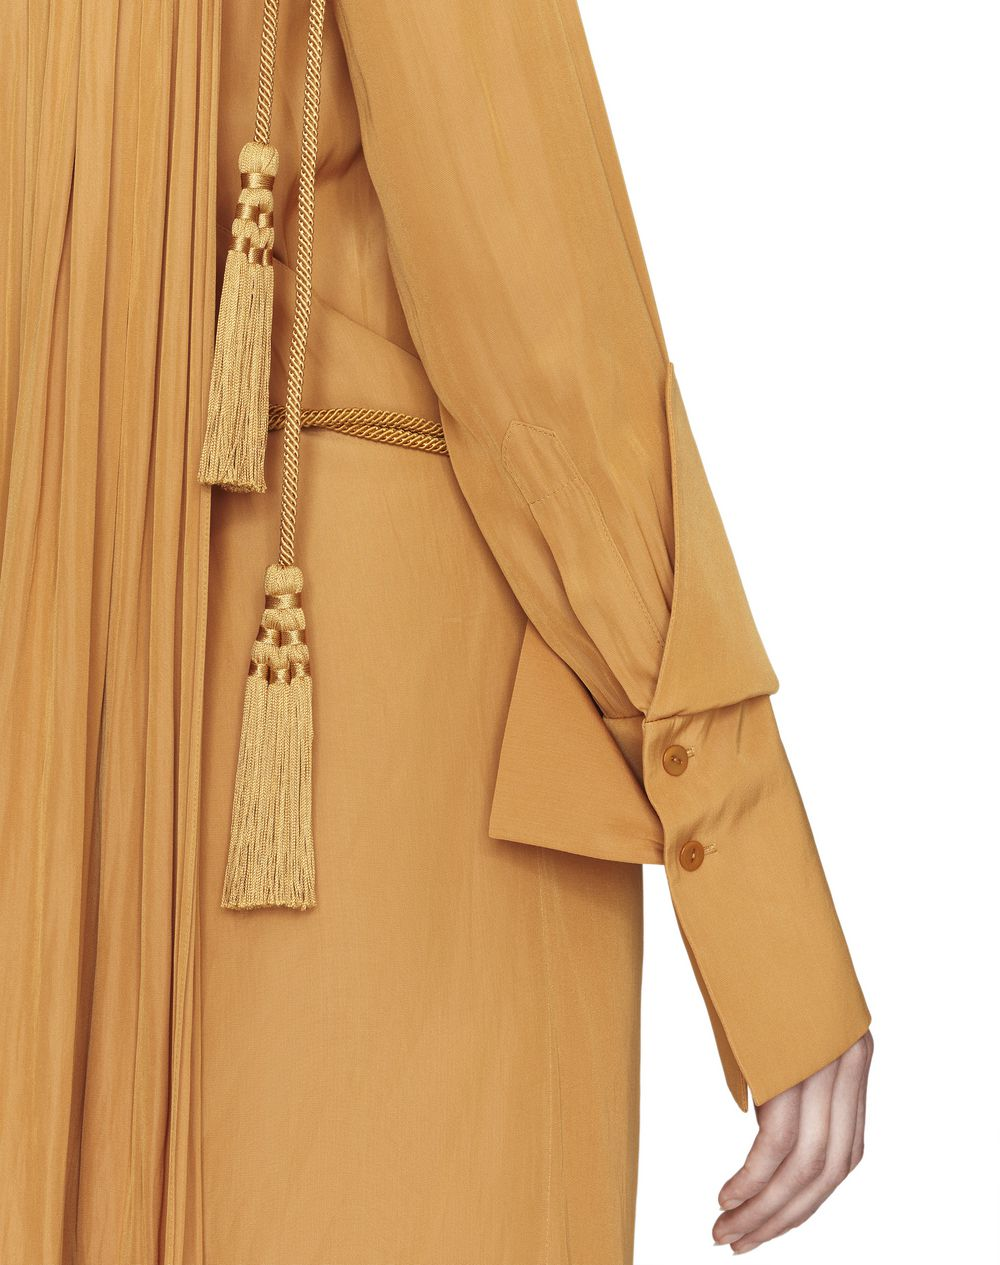 MID-LENGTH GOLD SATIN DRESS   - Lanvin